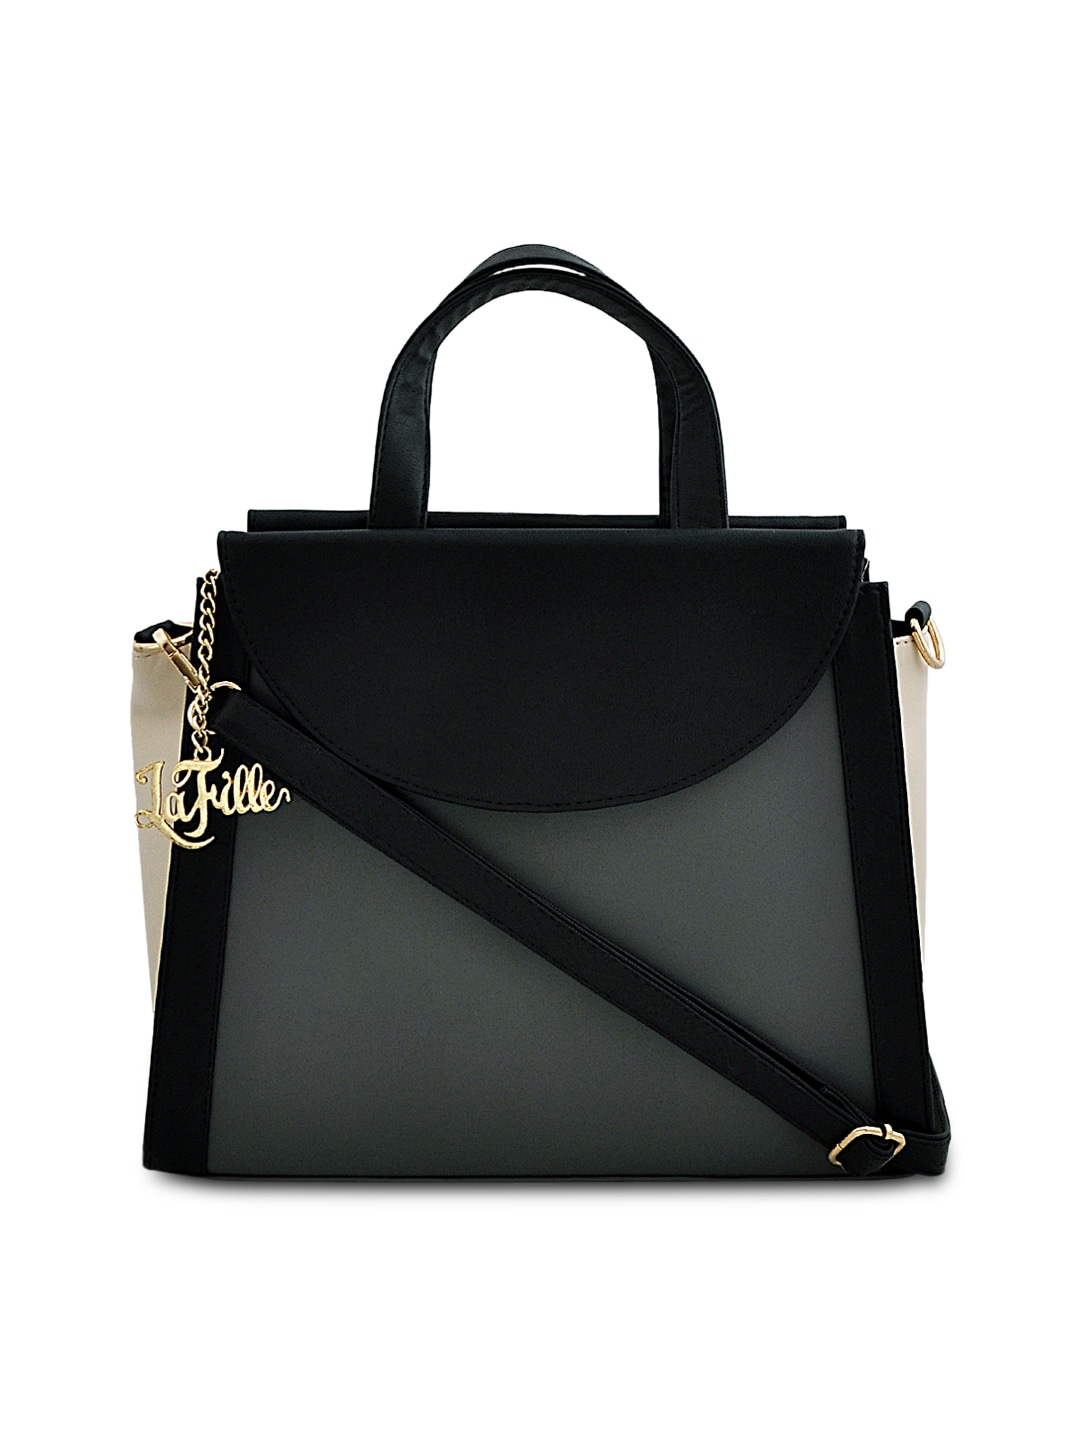 282bd53cf29f Bags for Women - Buy Trendy Women s Bags Online